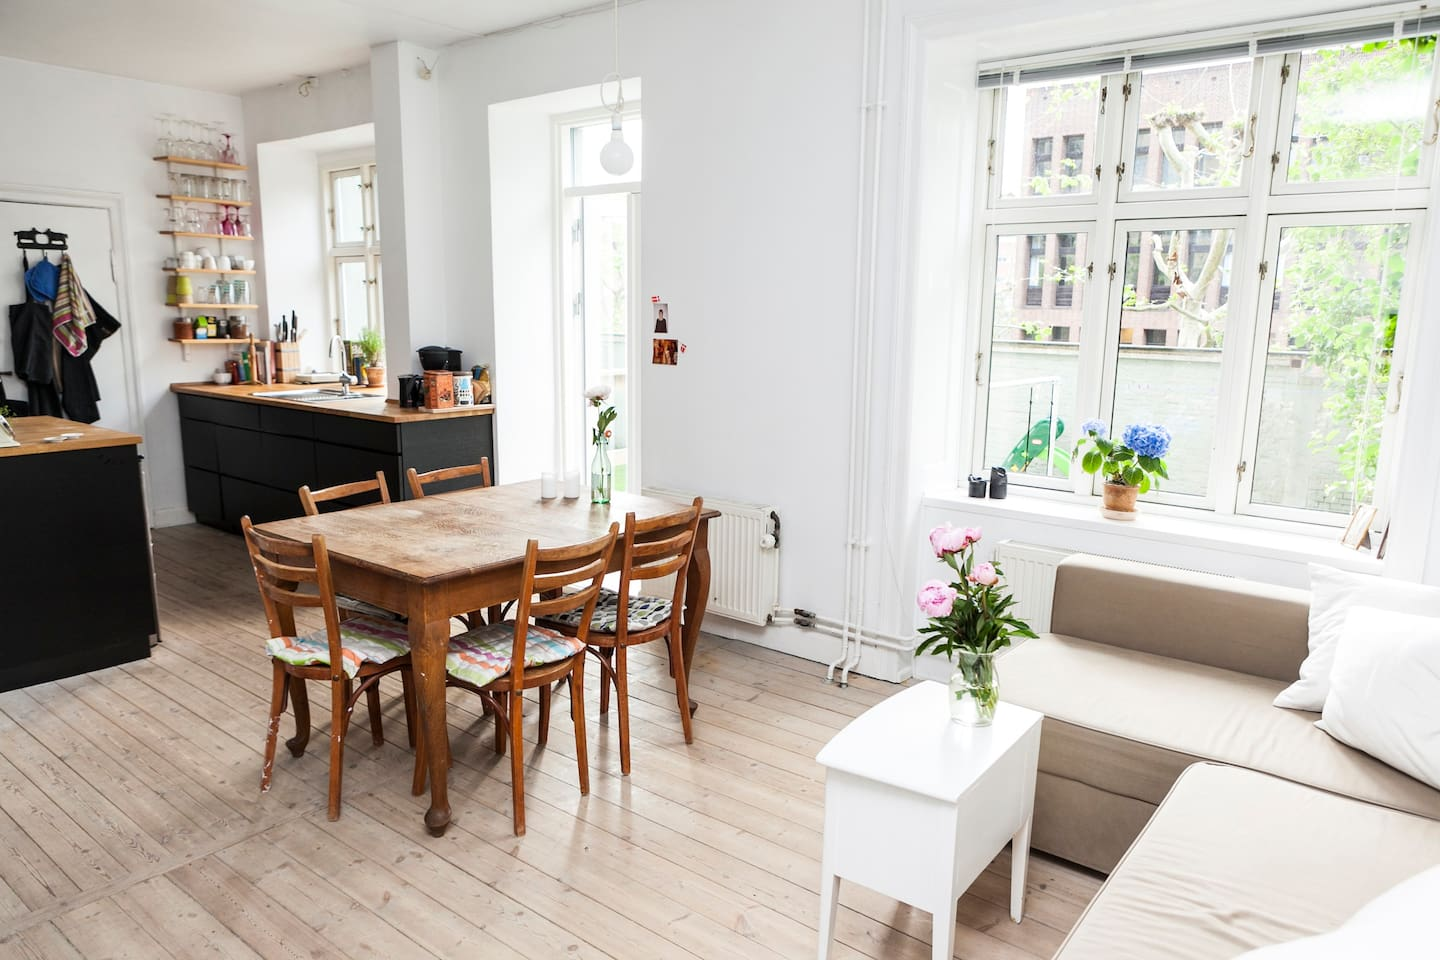 The combined living room and kitchen. In modern danish style, ideal for a good dinner while enjoying the fresh air from the terrace door.